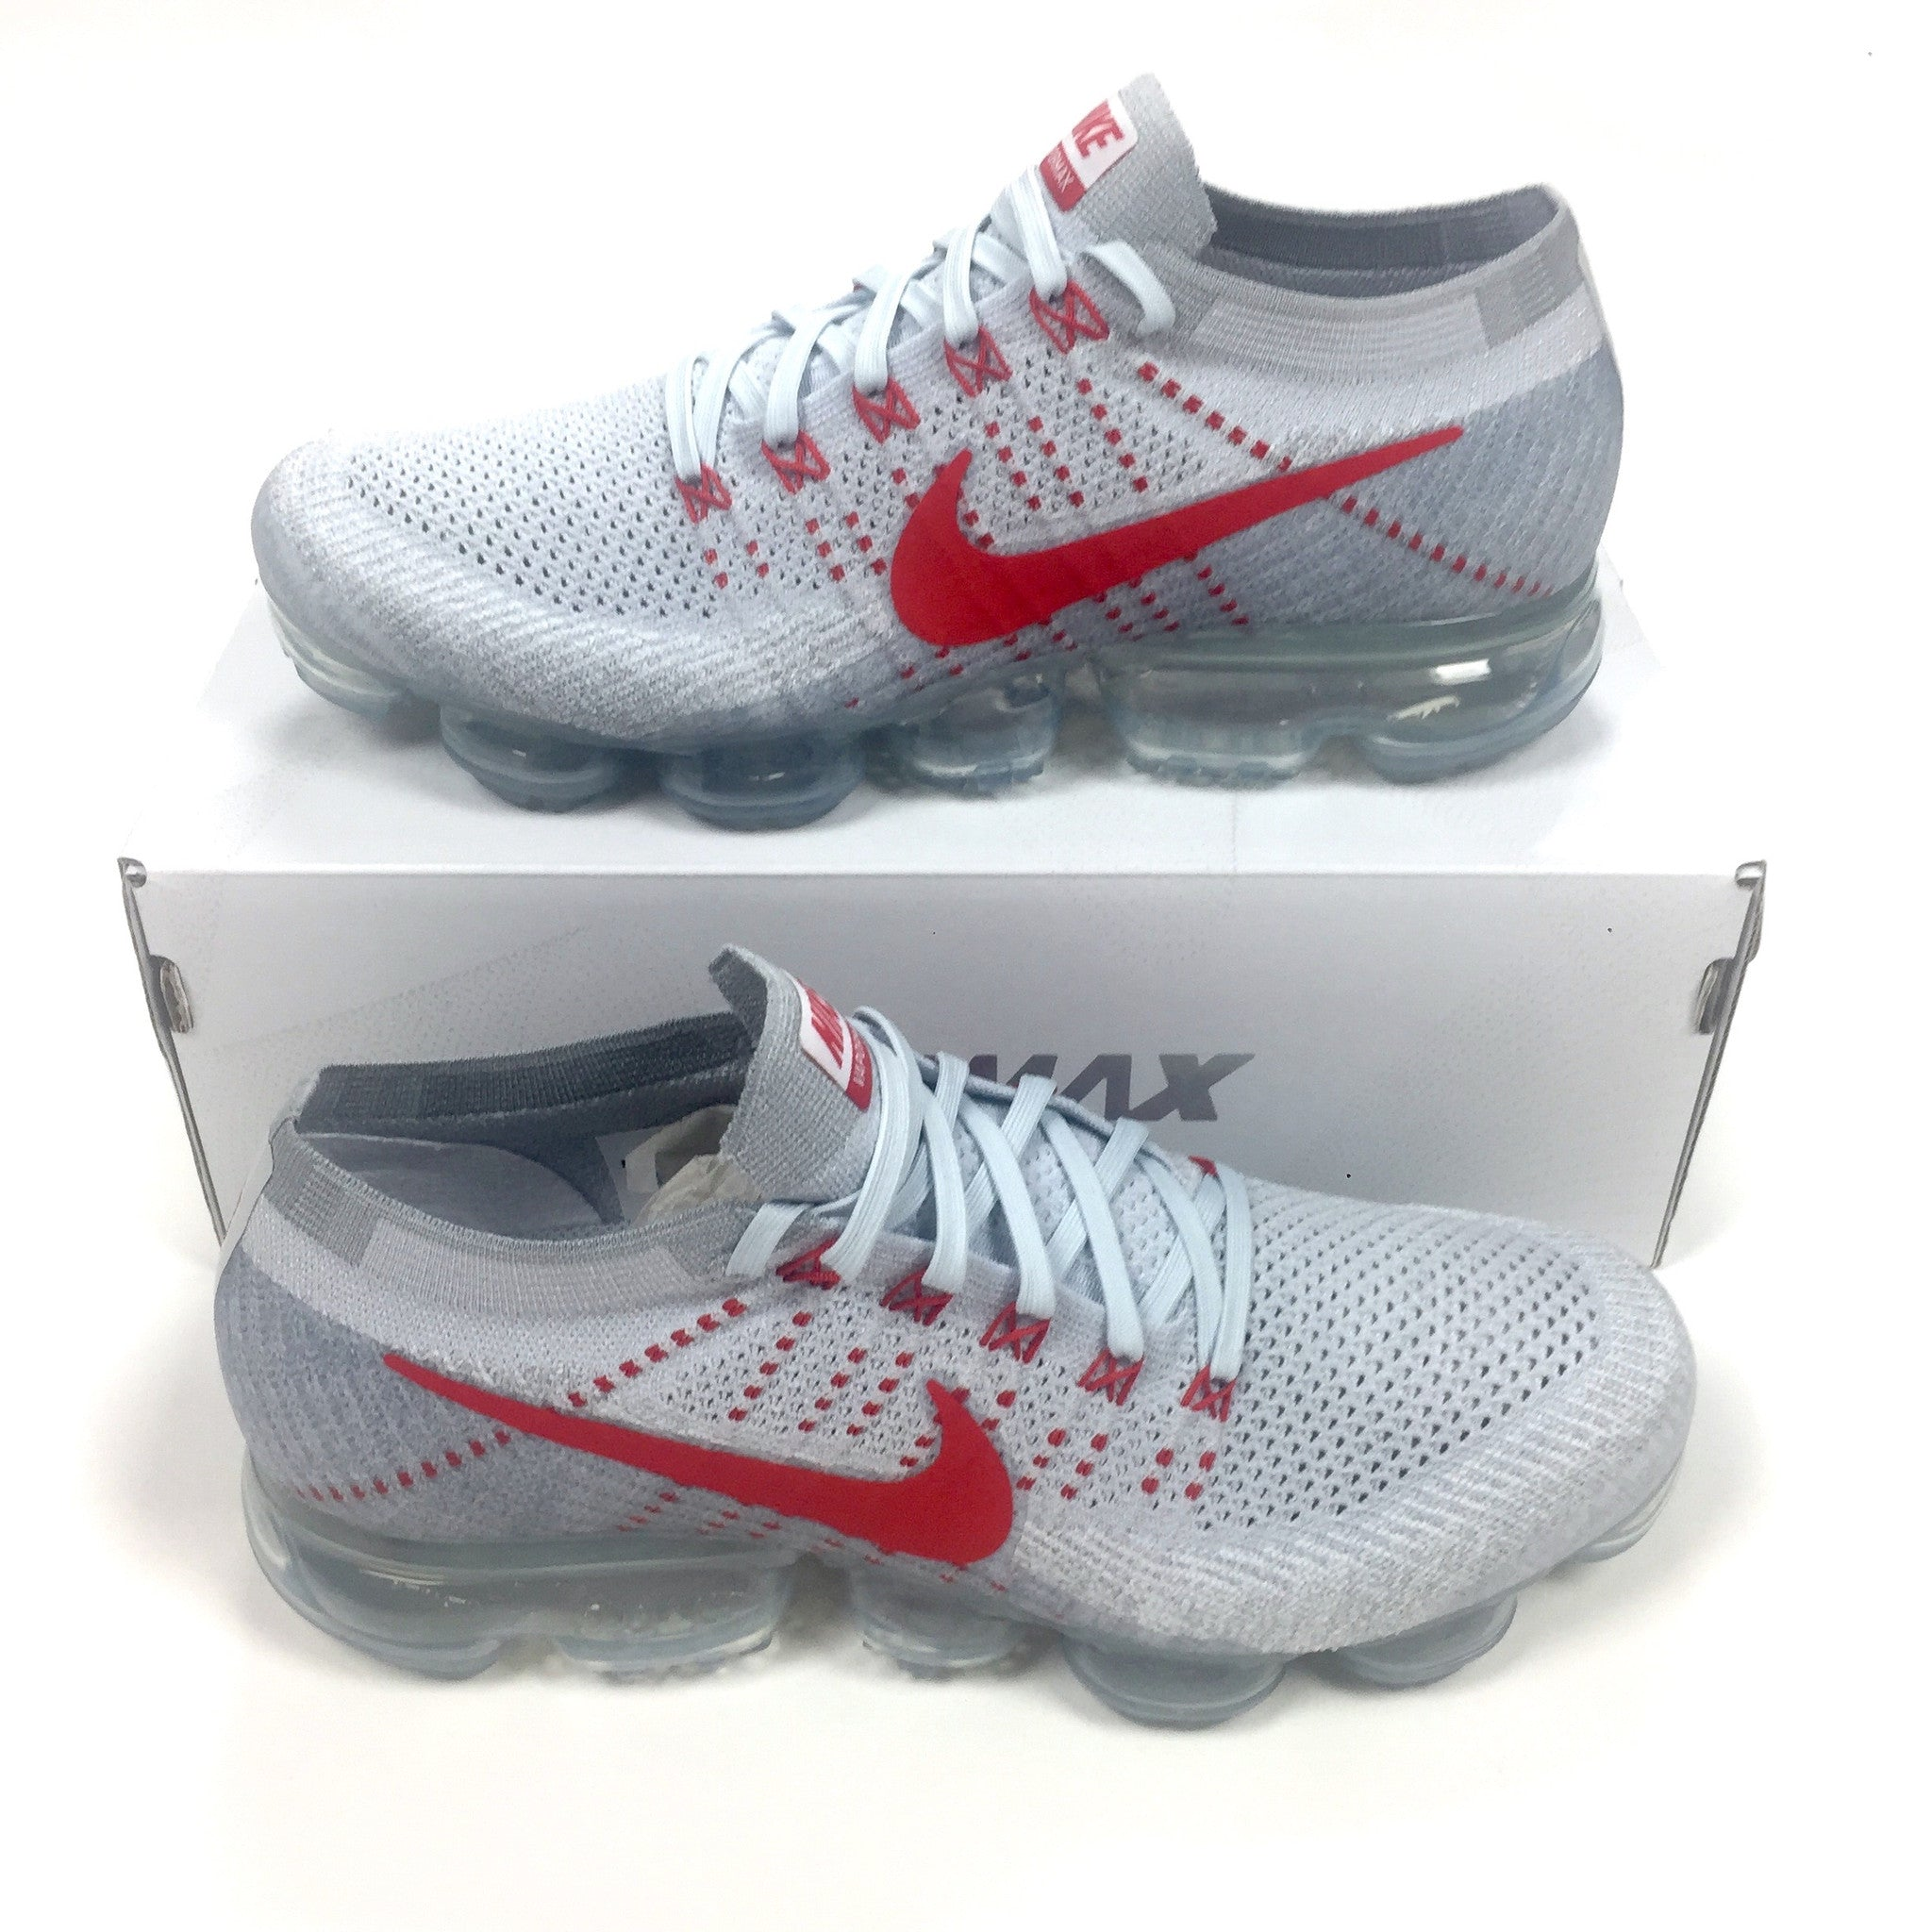 huge discount e3c08 672bc Nike - Men's Air Vapormax Flyknit OG Platinum / White / Red Sneakers ...